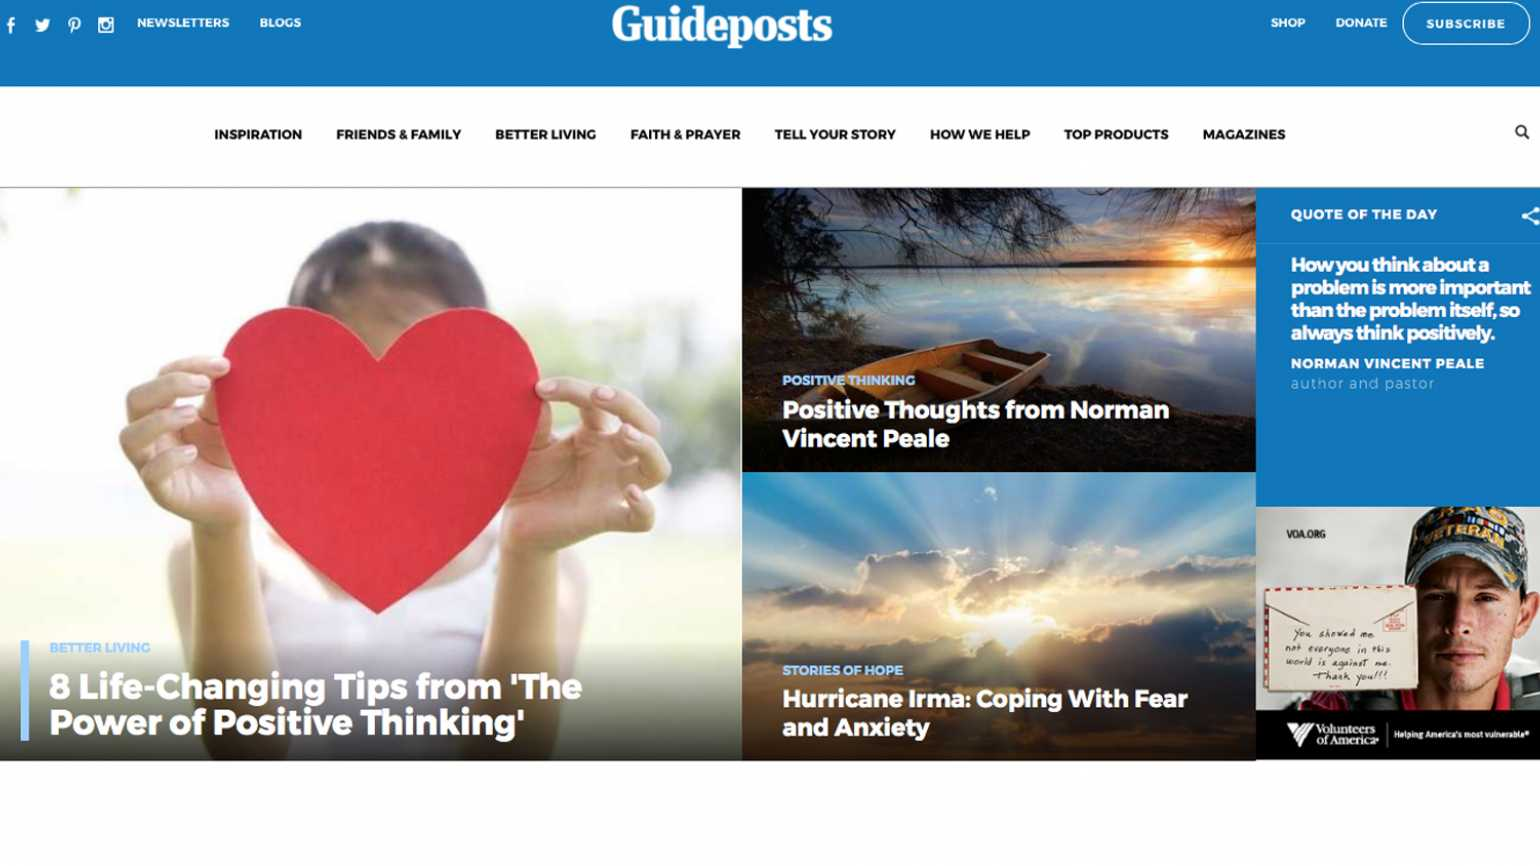 A screenshot of the Guideposts homepage.